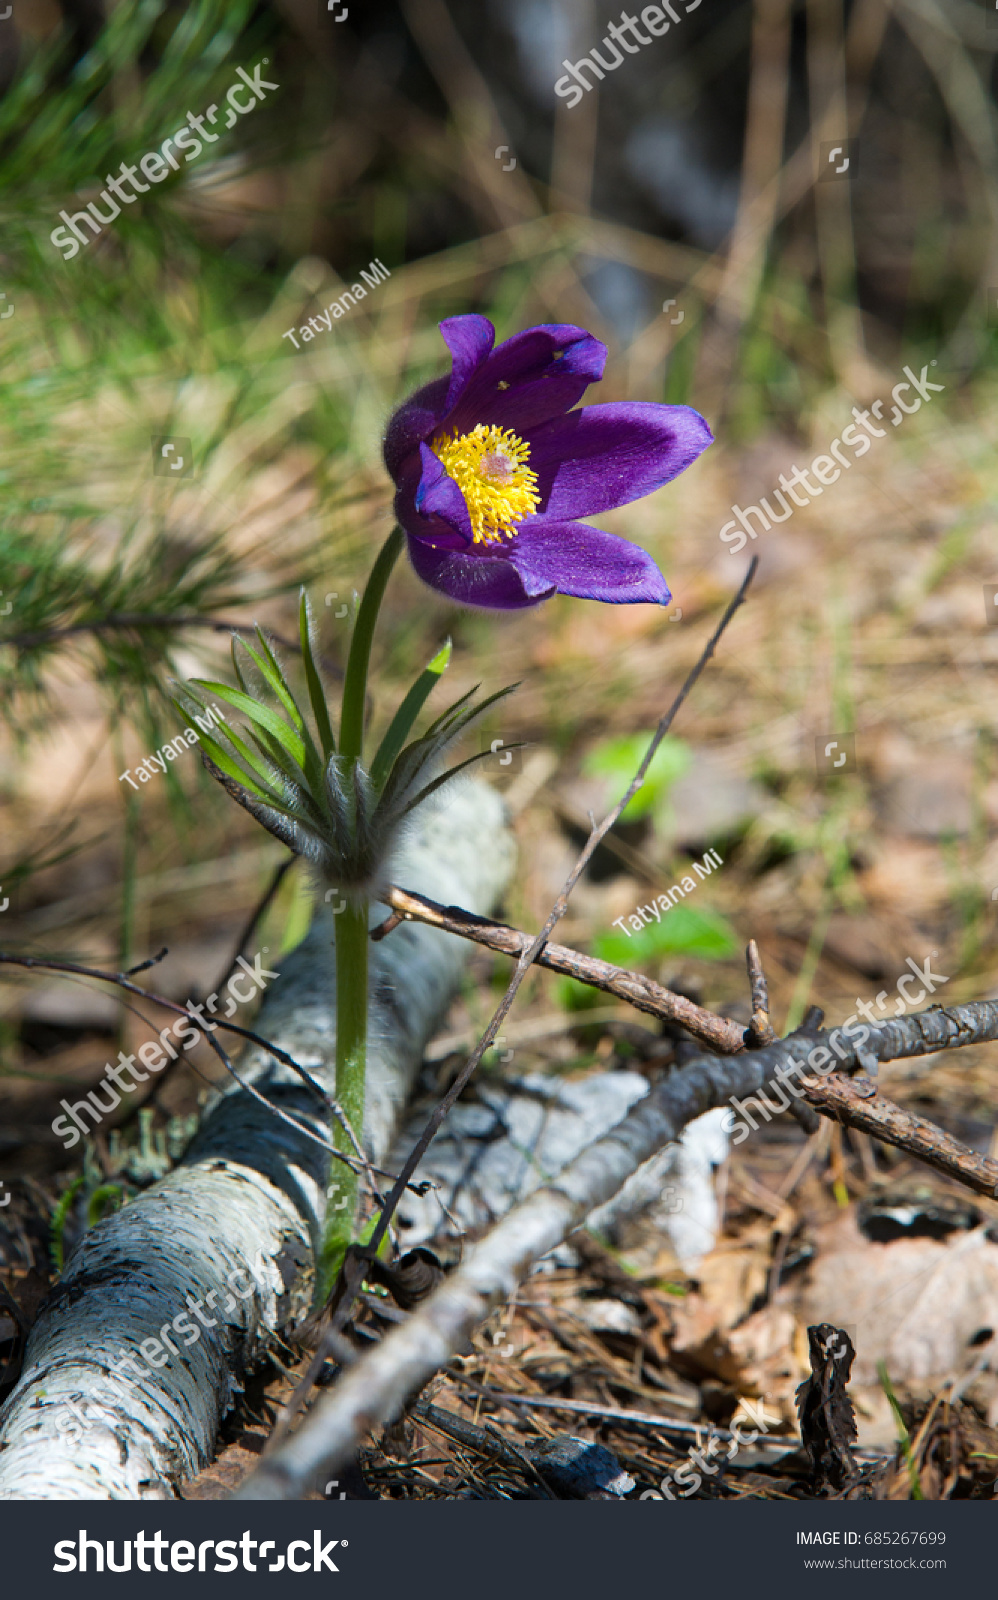 Spring Landscape Flowers Growing Wild Spring Stock Photo Royalty